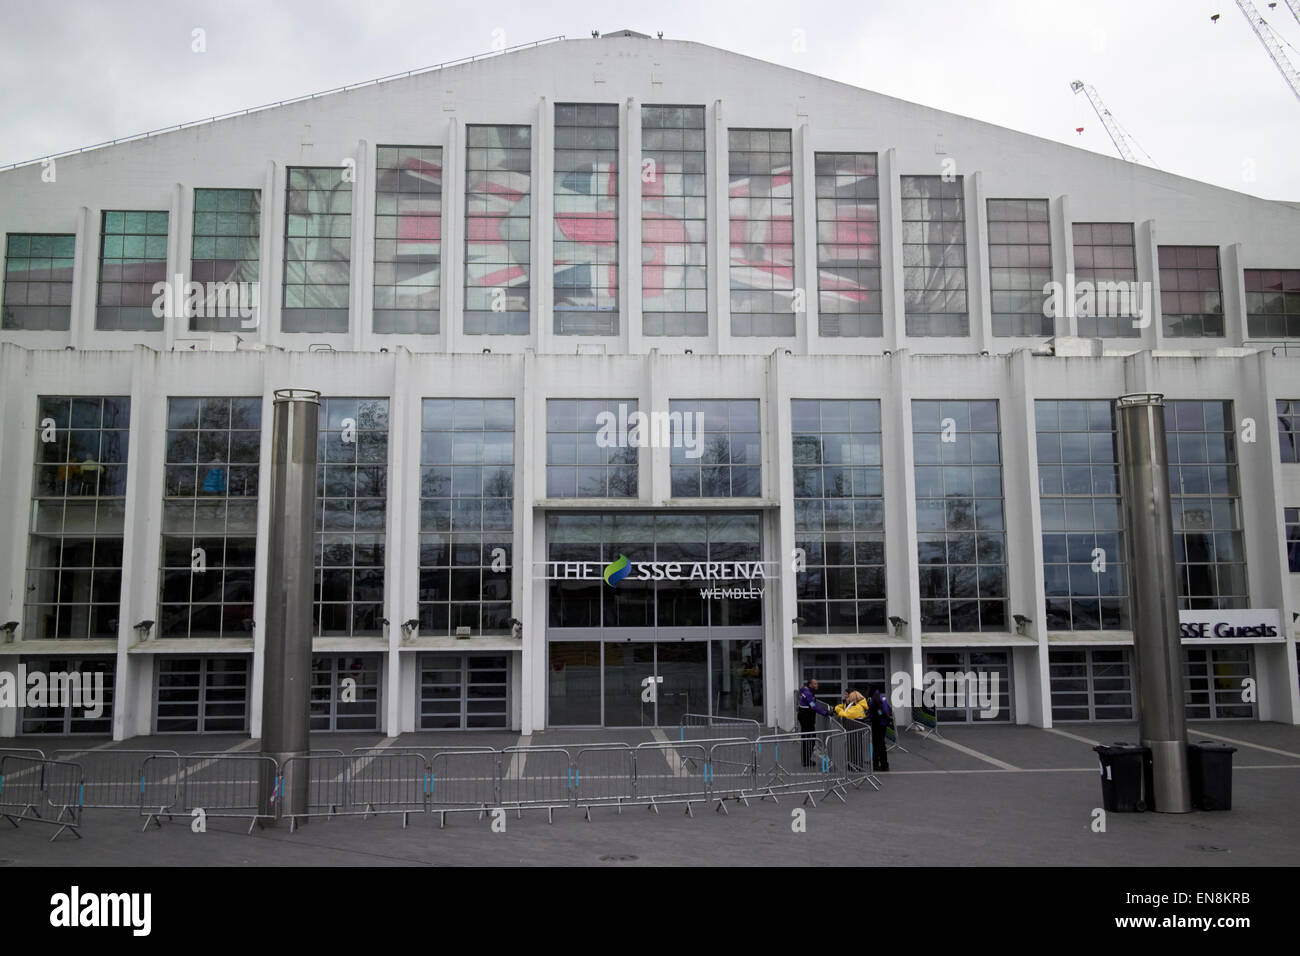 the sse Wembley arena London UK - Stock Image